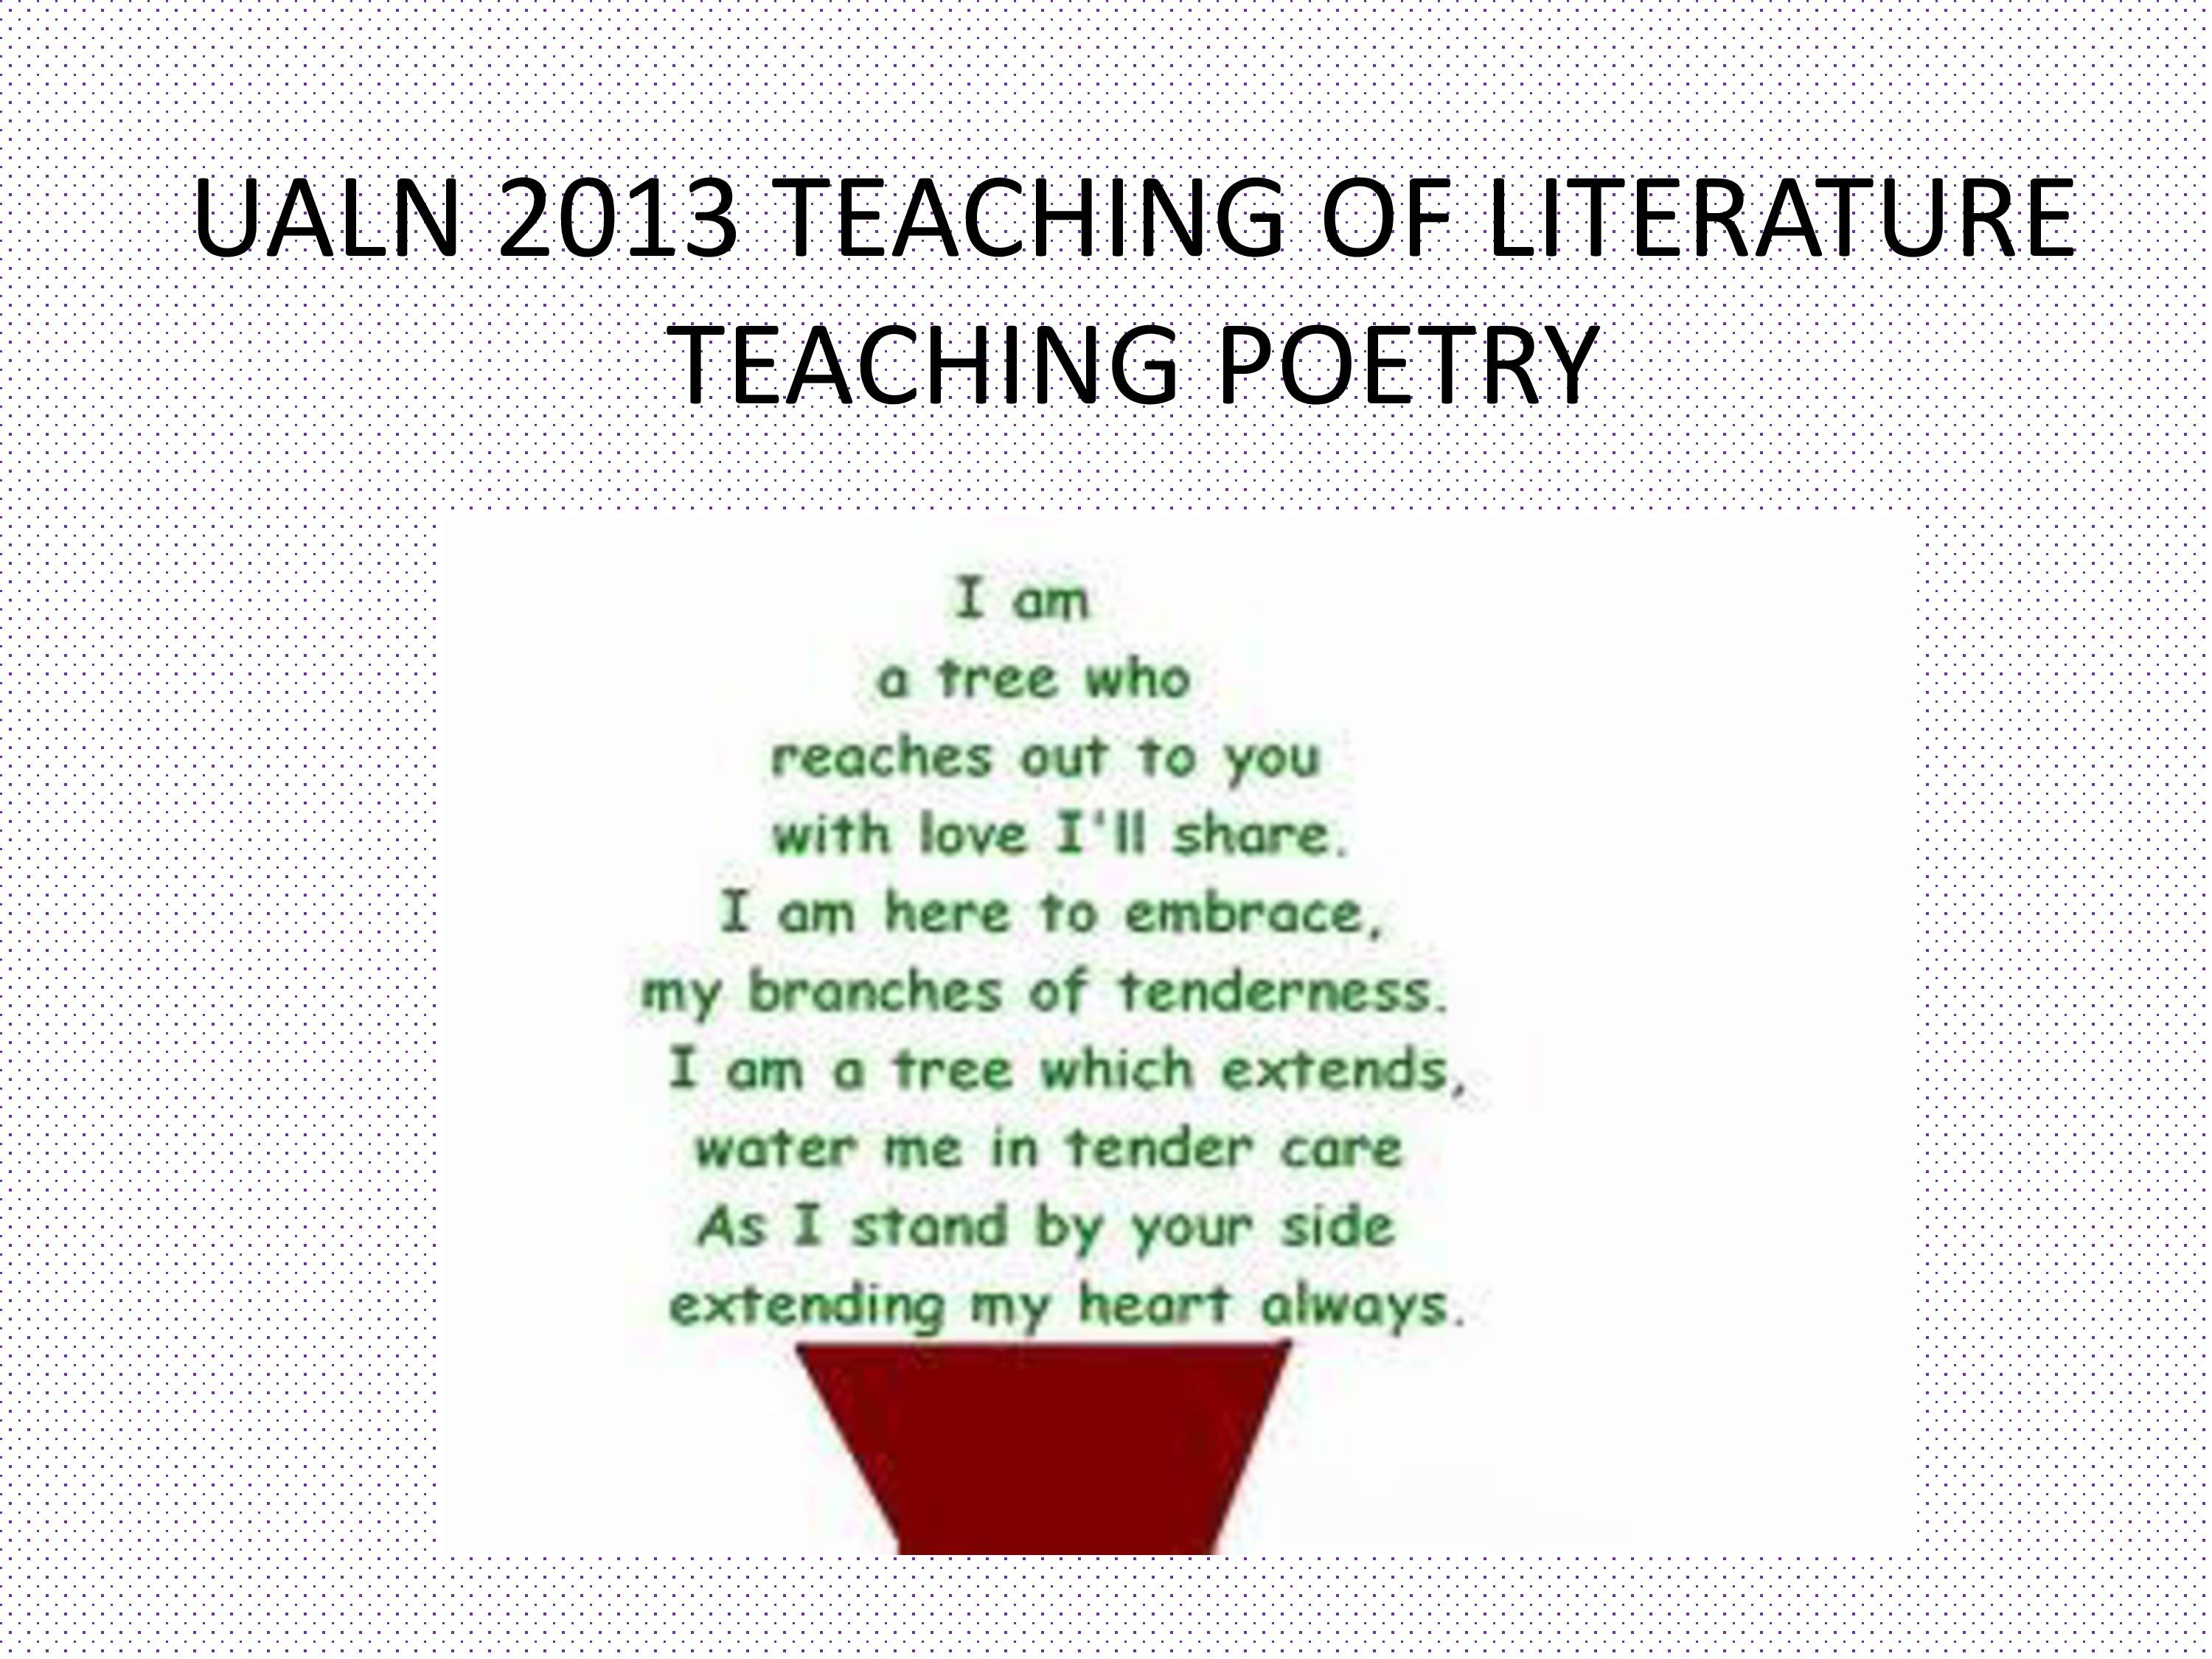 PPT On How to Teach Poetry